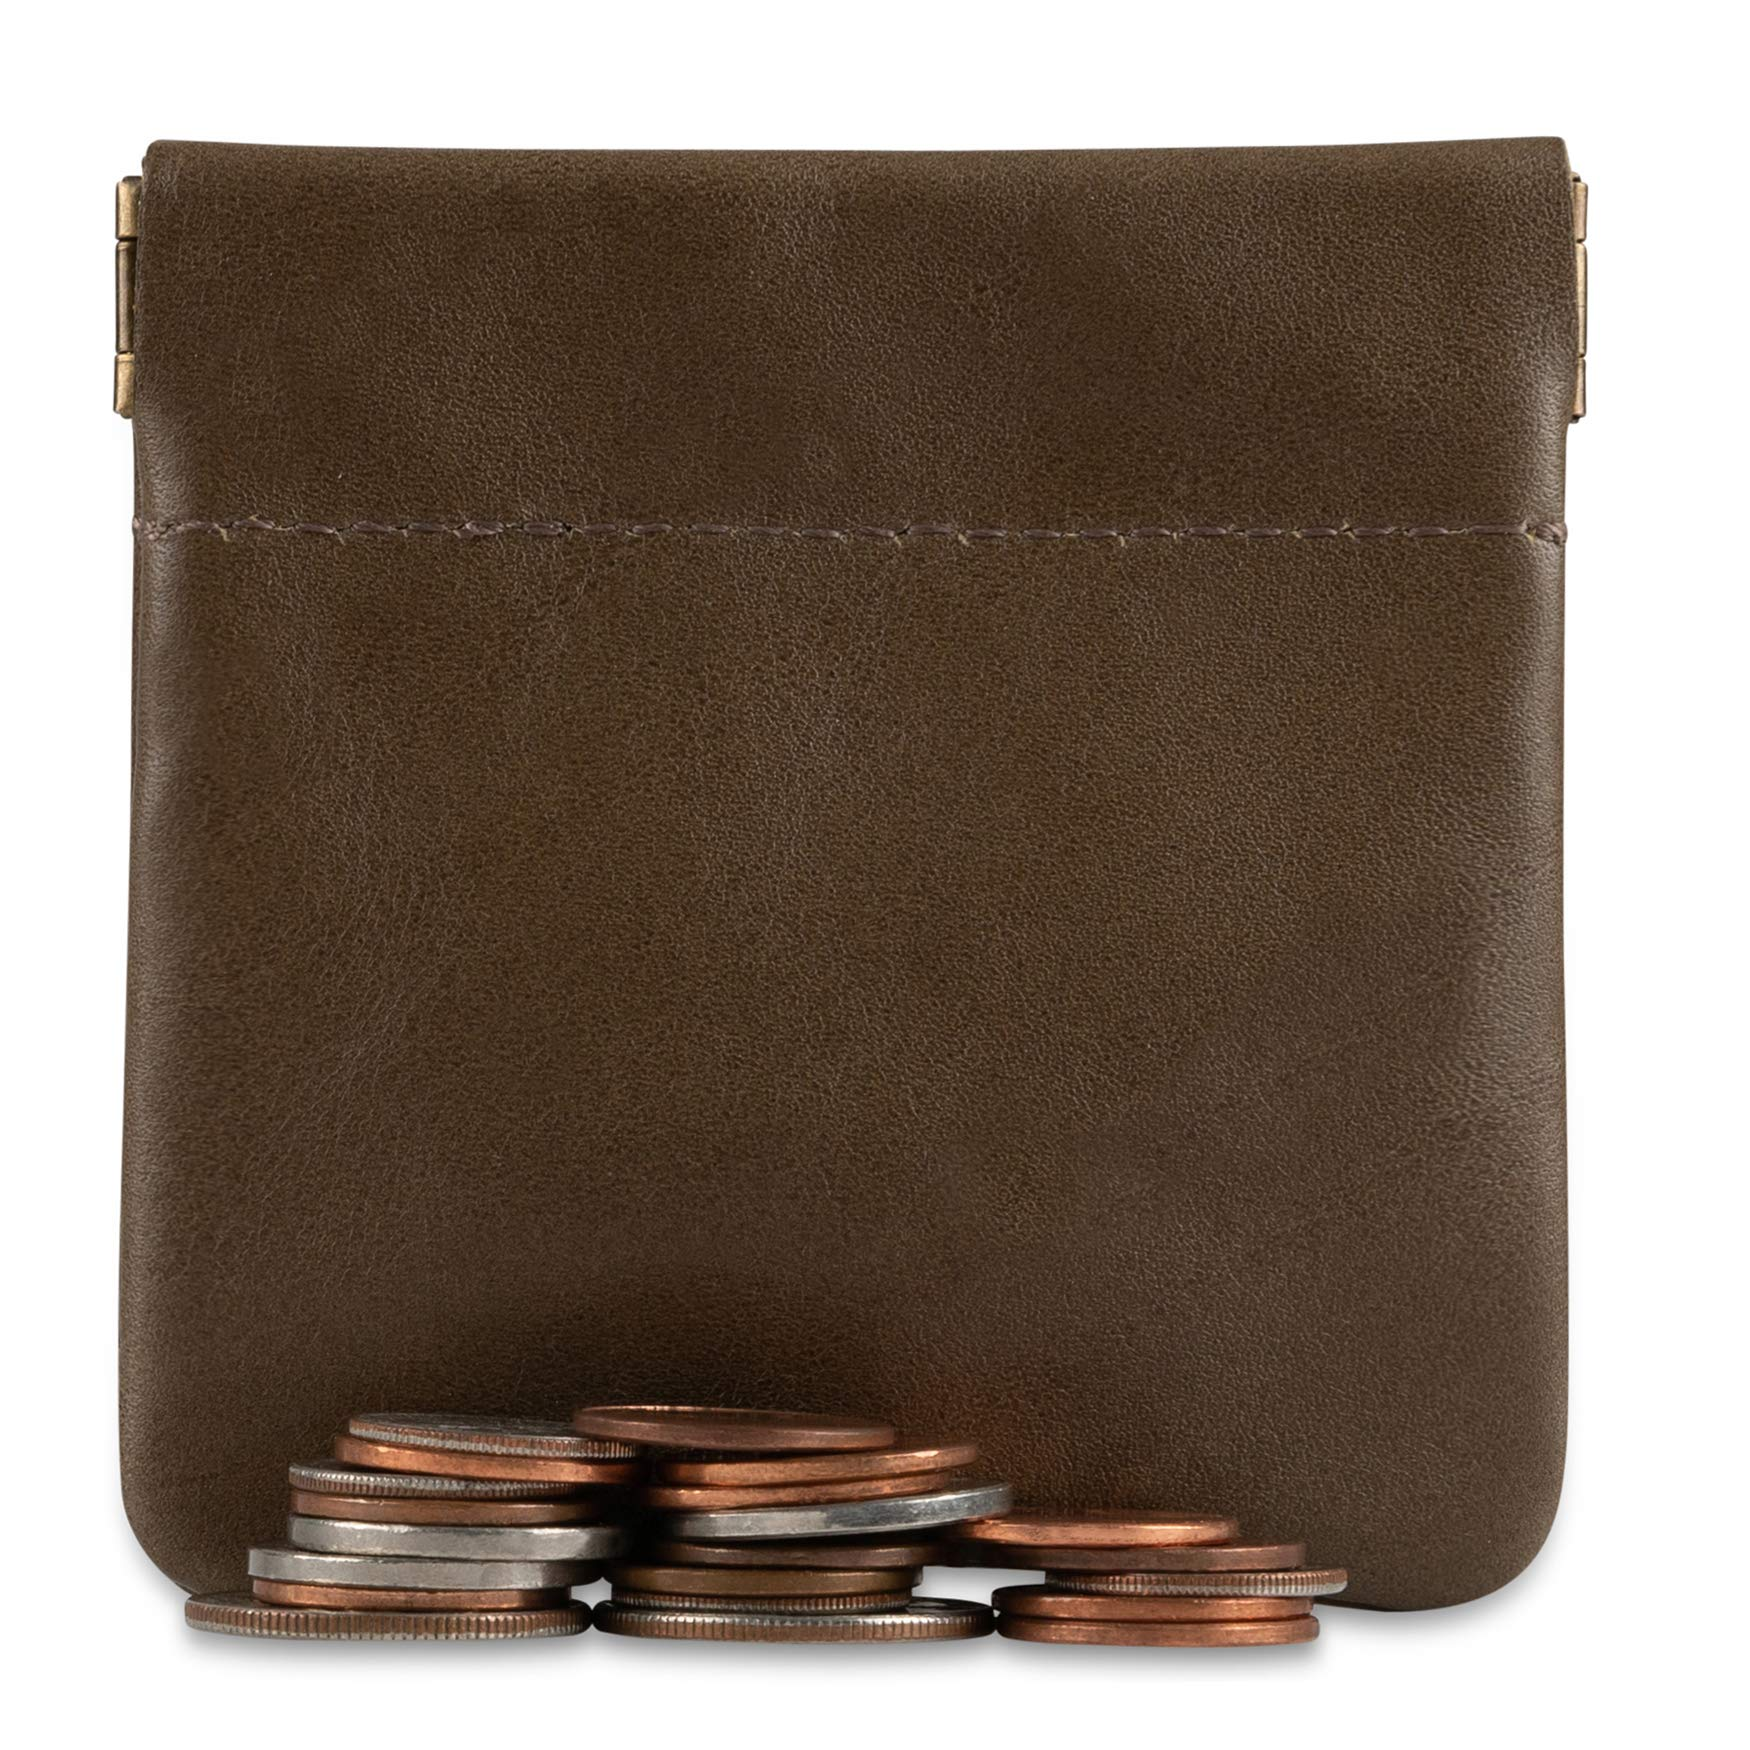 Pouch Made IN U.S.A Genuine Leather Squeeze Coin Purse Change Holder For Men//Woman Size 3.5 X 3.5